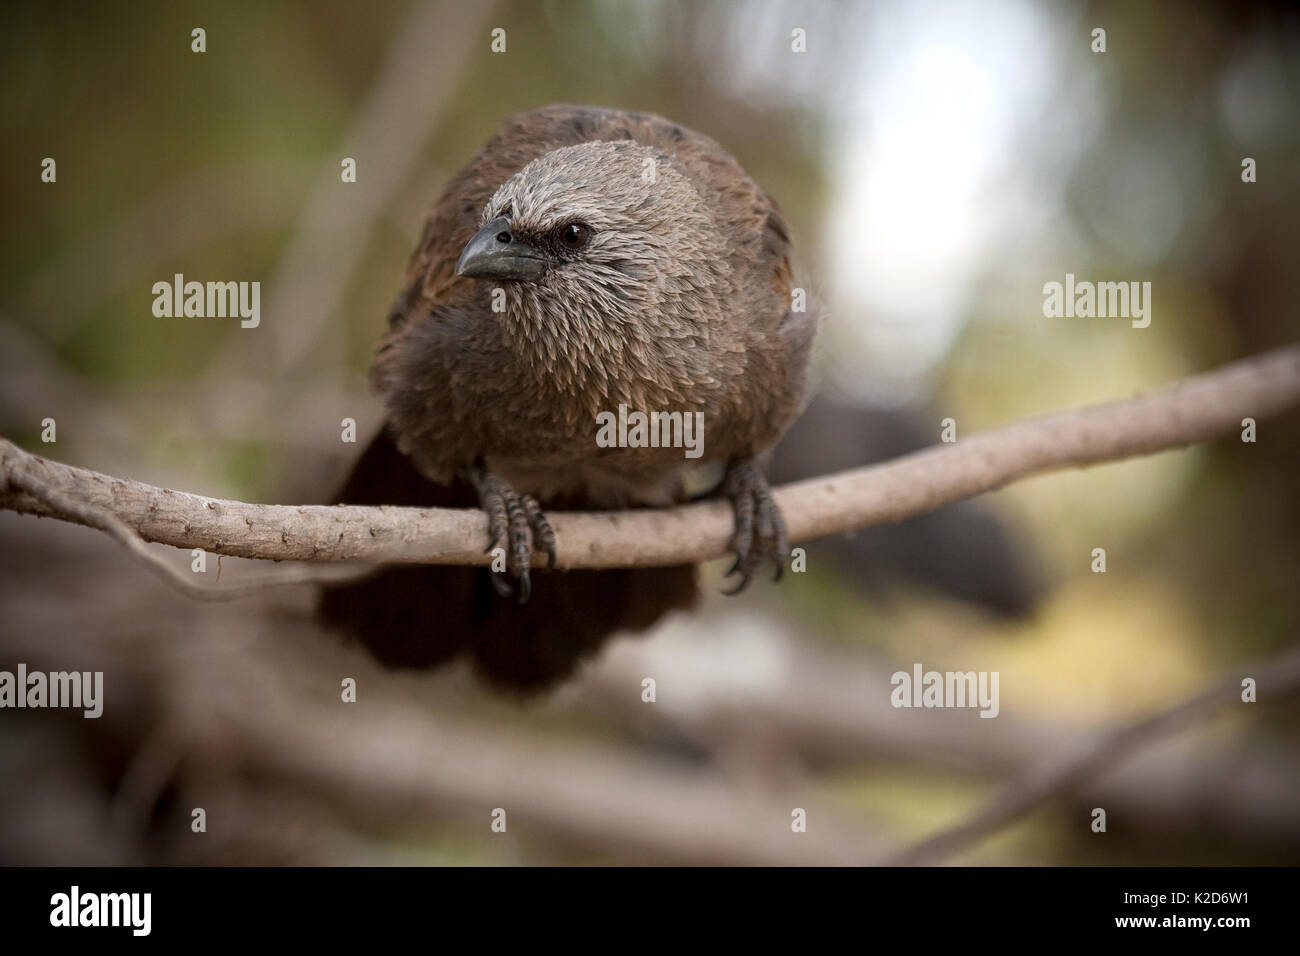 Immature Apostlebird, Struthidea cinerea, sitting on a limb and checking out the photographer. These fun loving highly social birds can often be found ar - Stock Image